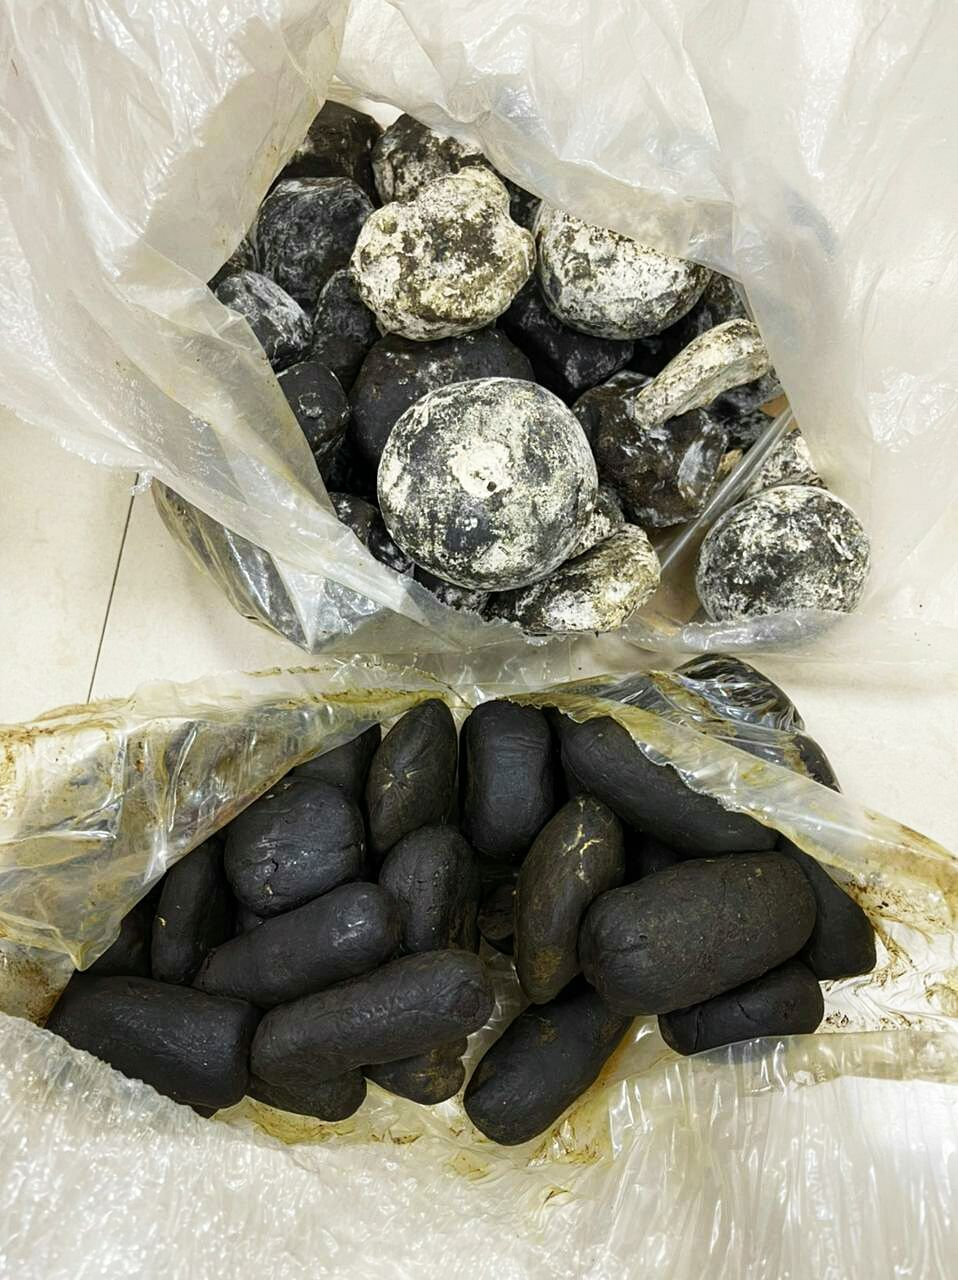 Mumbai: NCB arrests 7 persons, seizes 17.3 kg of Hashish and Rs 4.40 lakh cash